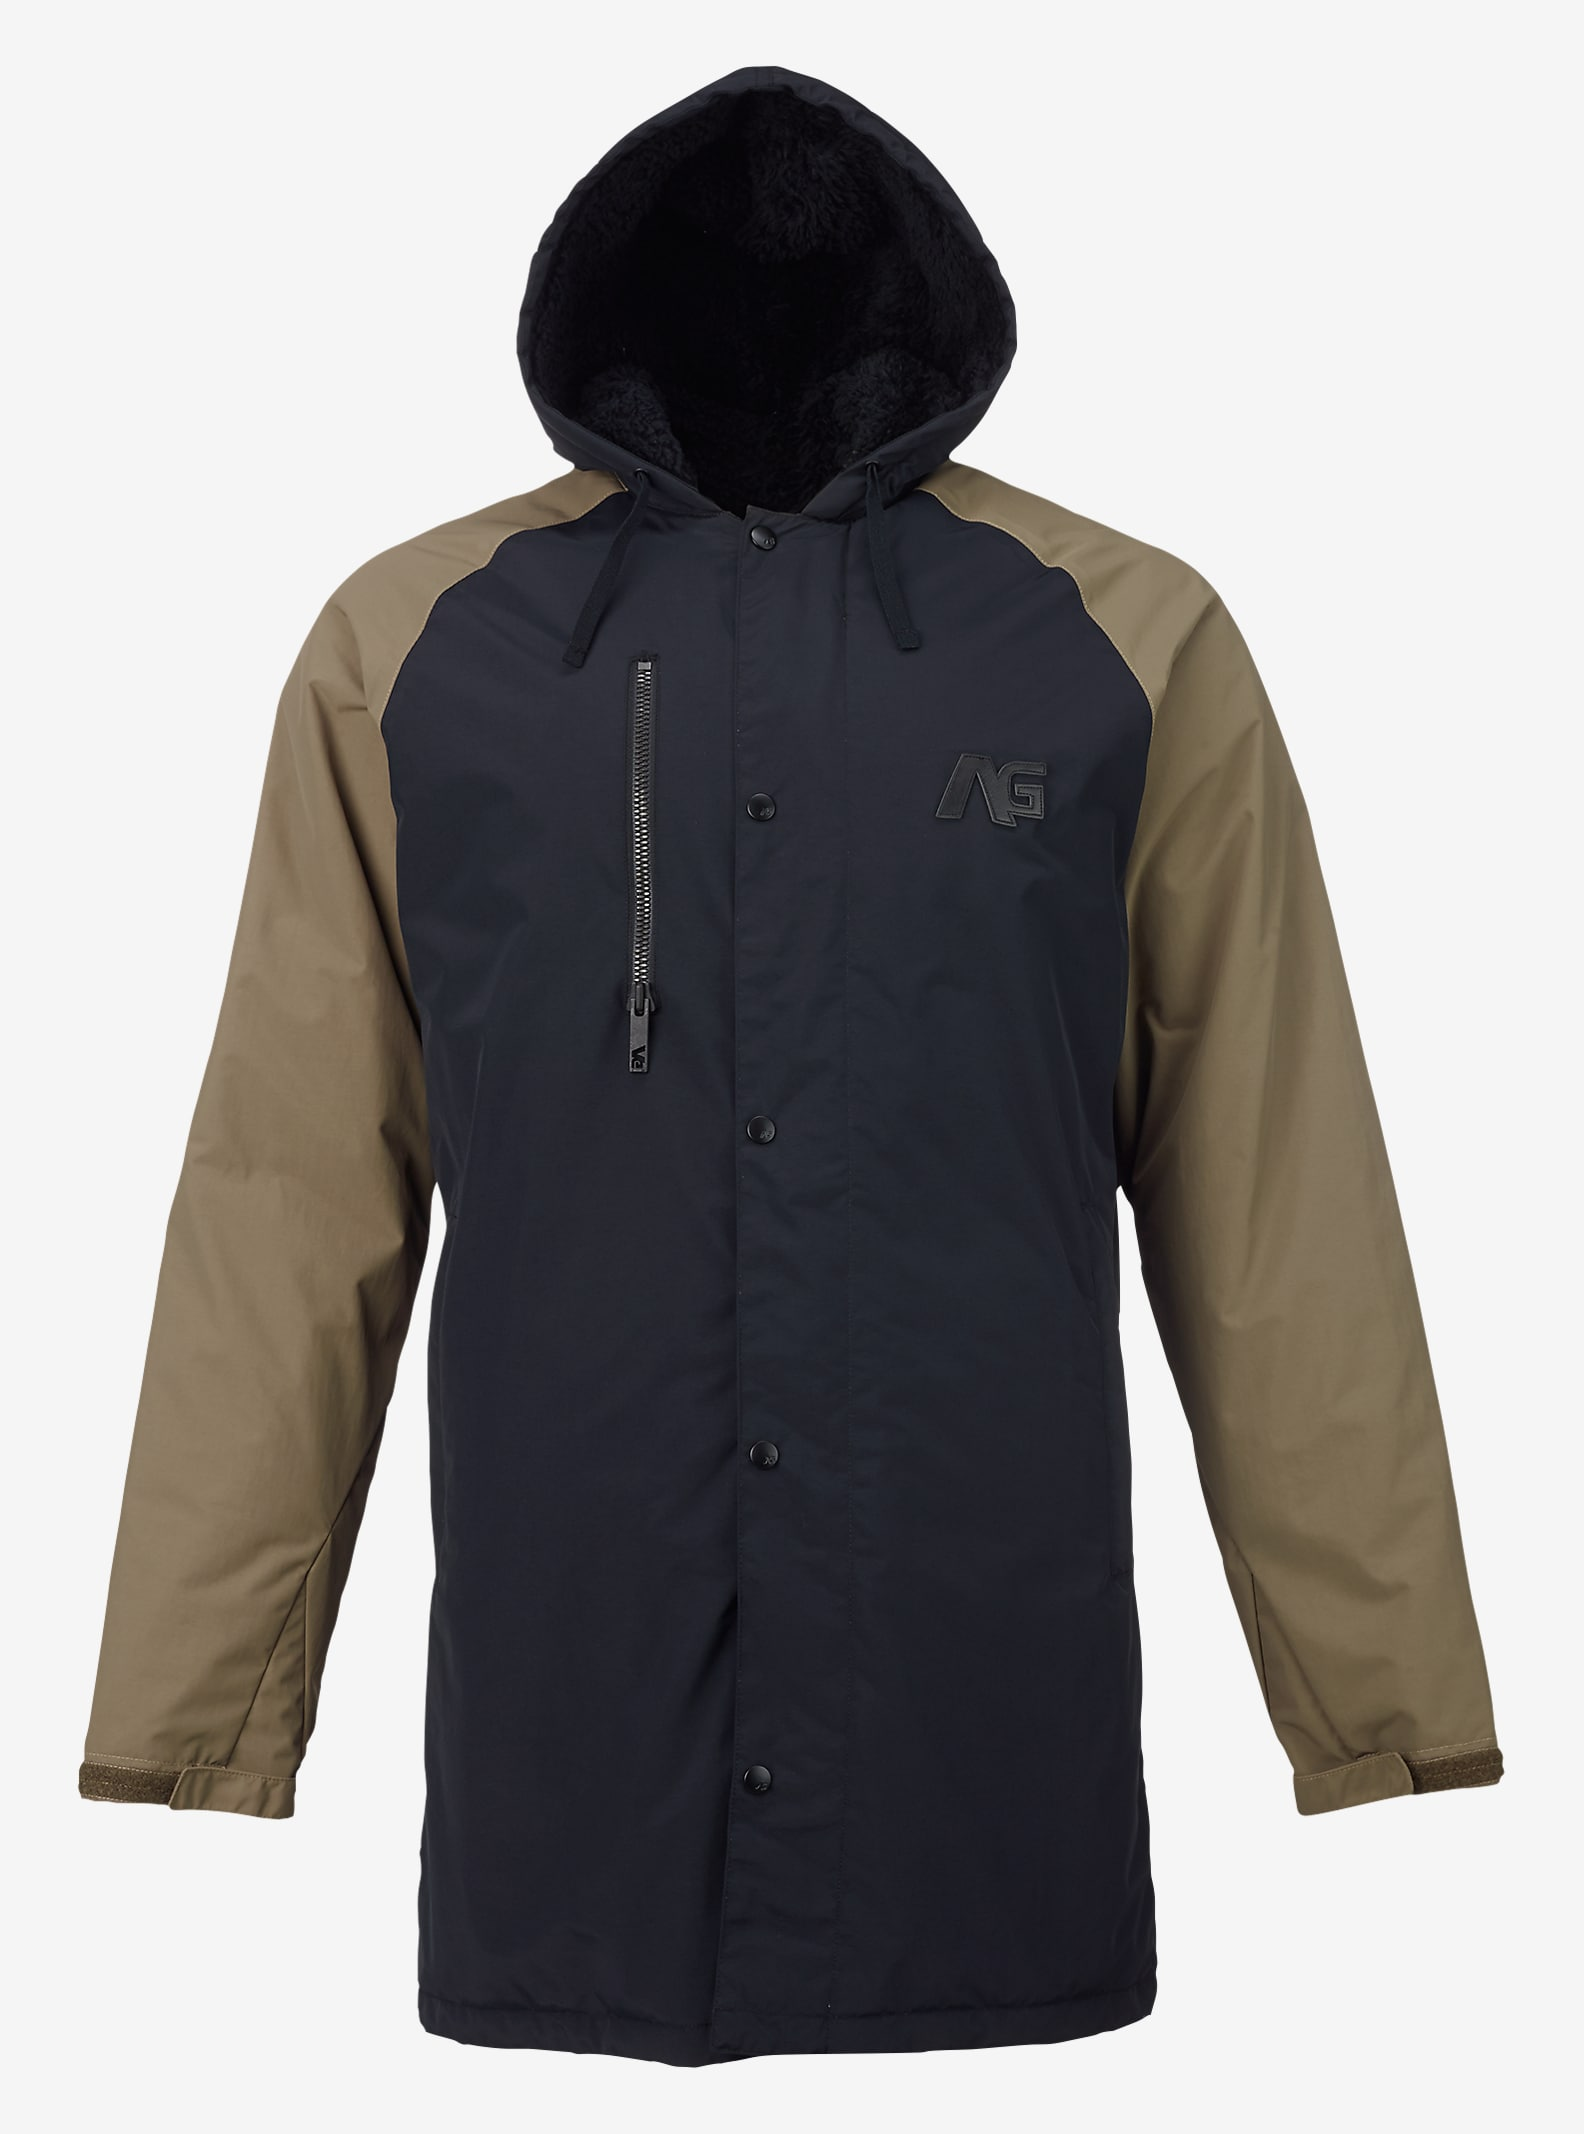 Analog - Parka Stadium affichage en True Black / Soil